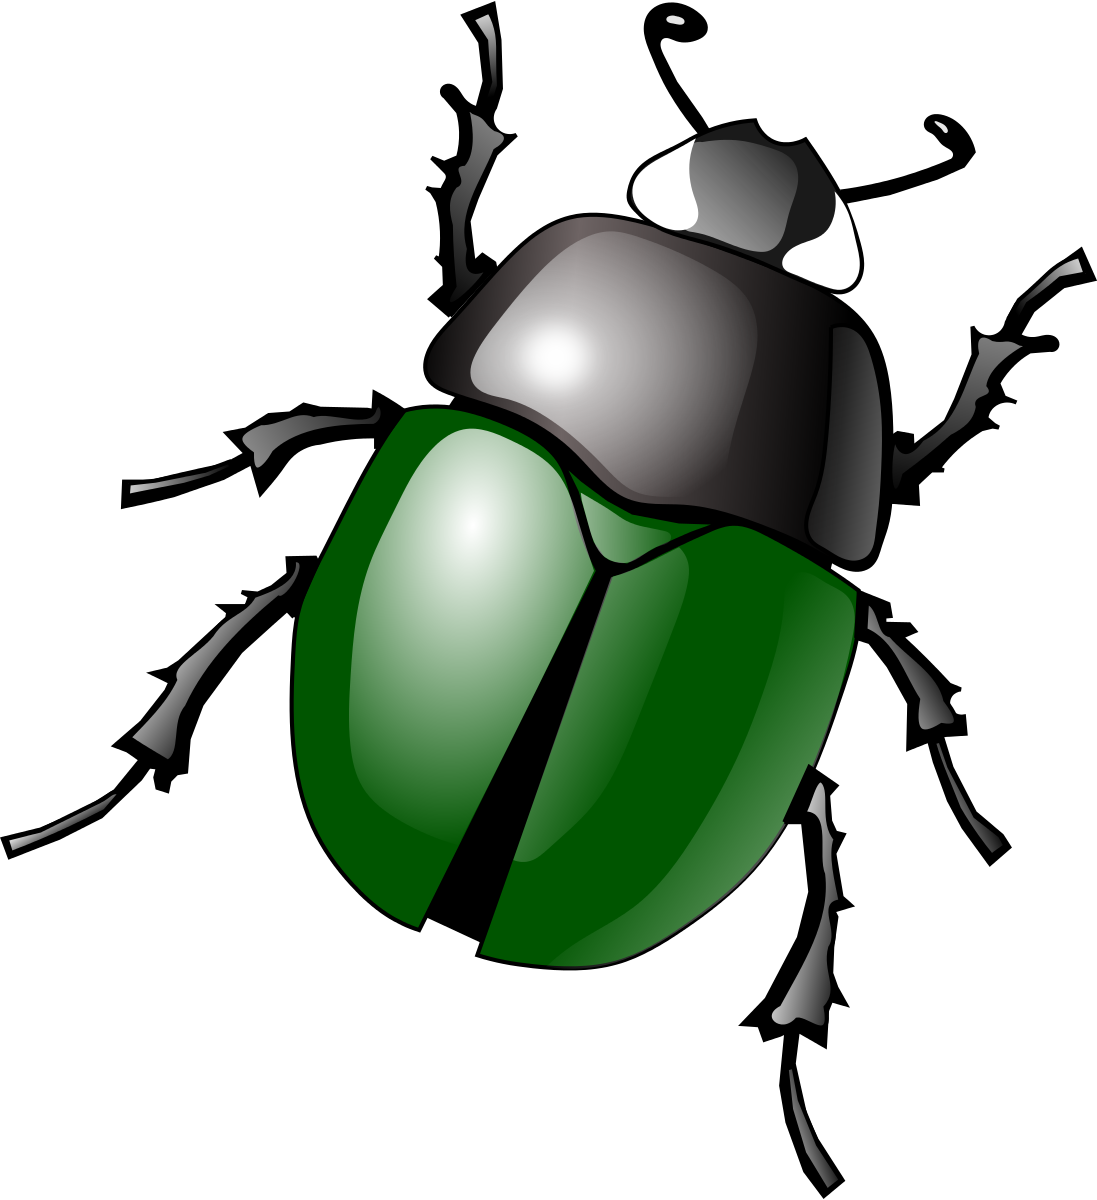 Beelte clipart scarab beetle Clipart Images Free Panda beetle%20clipart%20